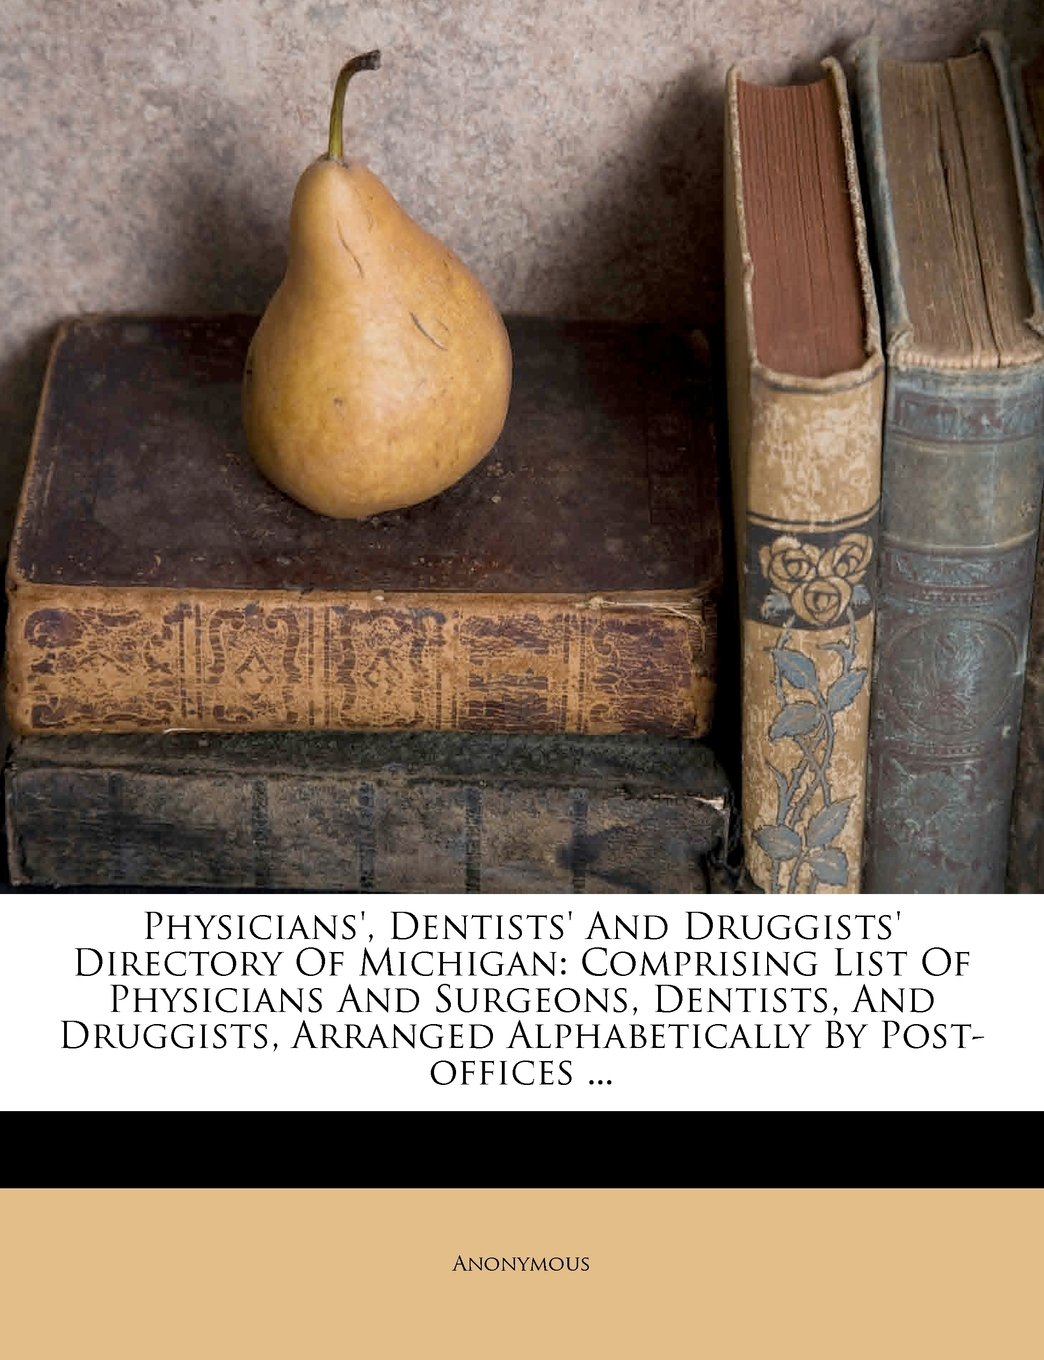 Physicians', Dentists' And Druggists' Directory Of Michigan: Comprising List Of Physicians And Surgeons, Dentists, And Druggists, Arranged Alphabetically By Post-offices ... ebook